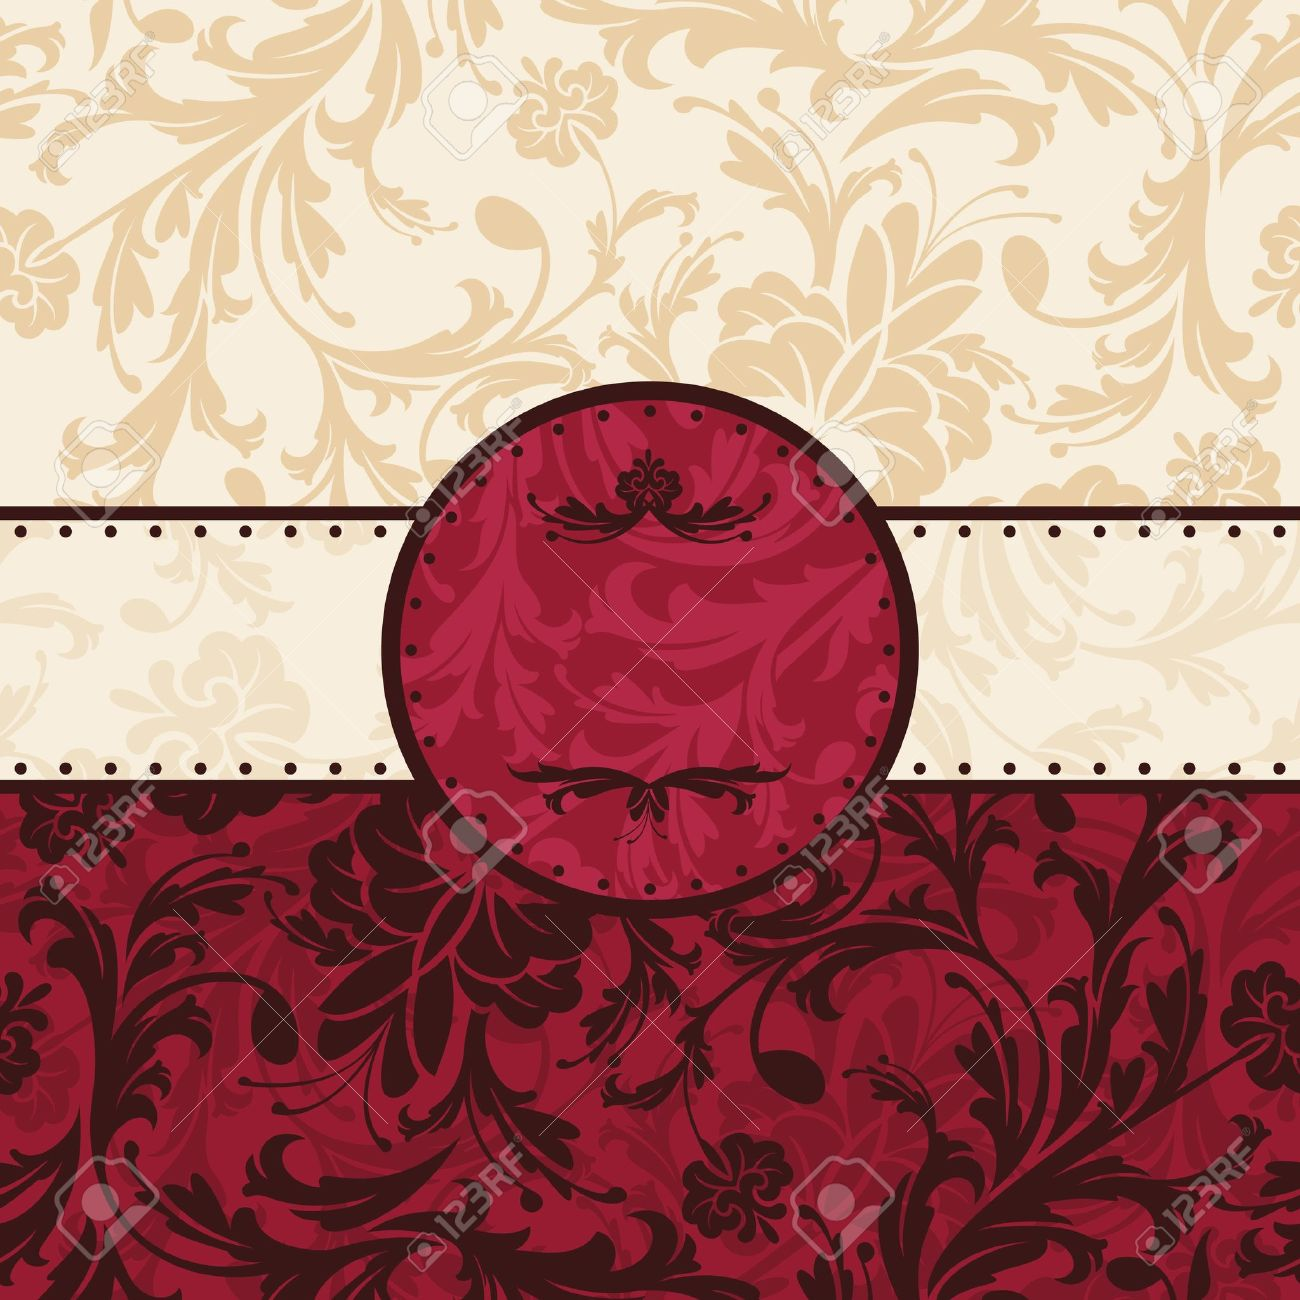 Abstract Retro Vintage Floral Frame Royalty Free Cliparts Vectors